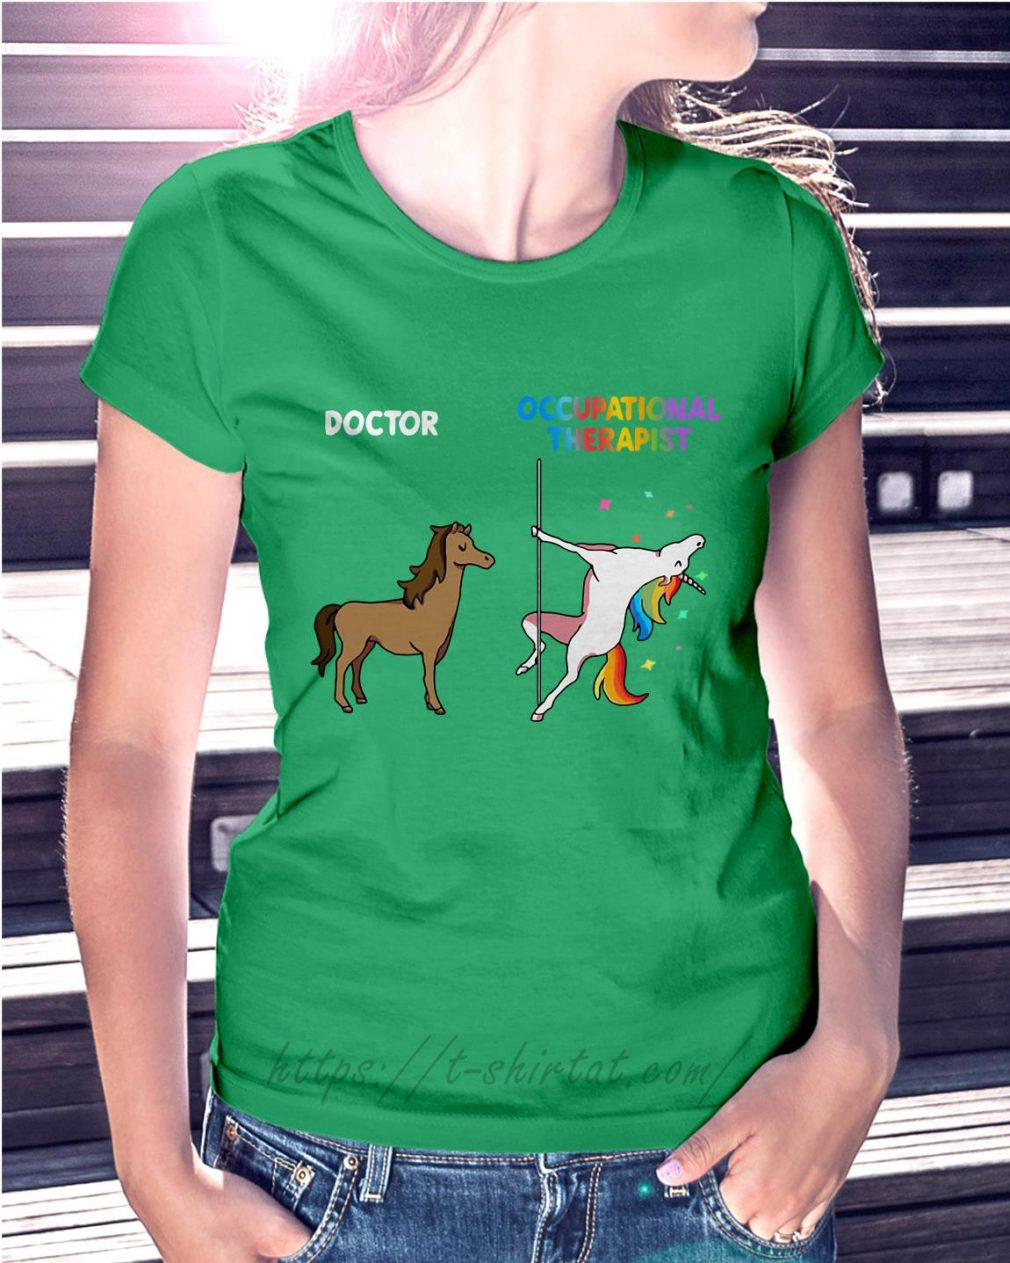 House doctor unicorn occupational therapist Ladies Tee green